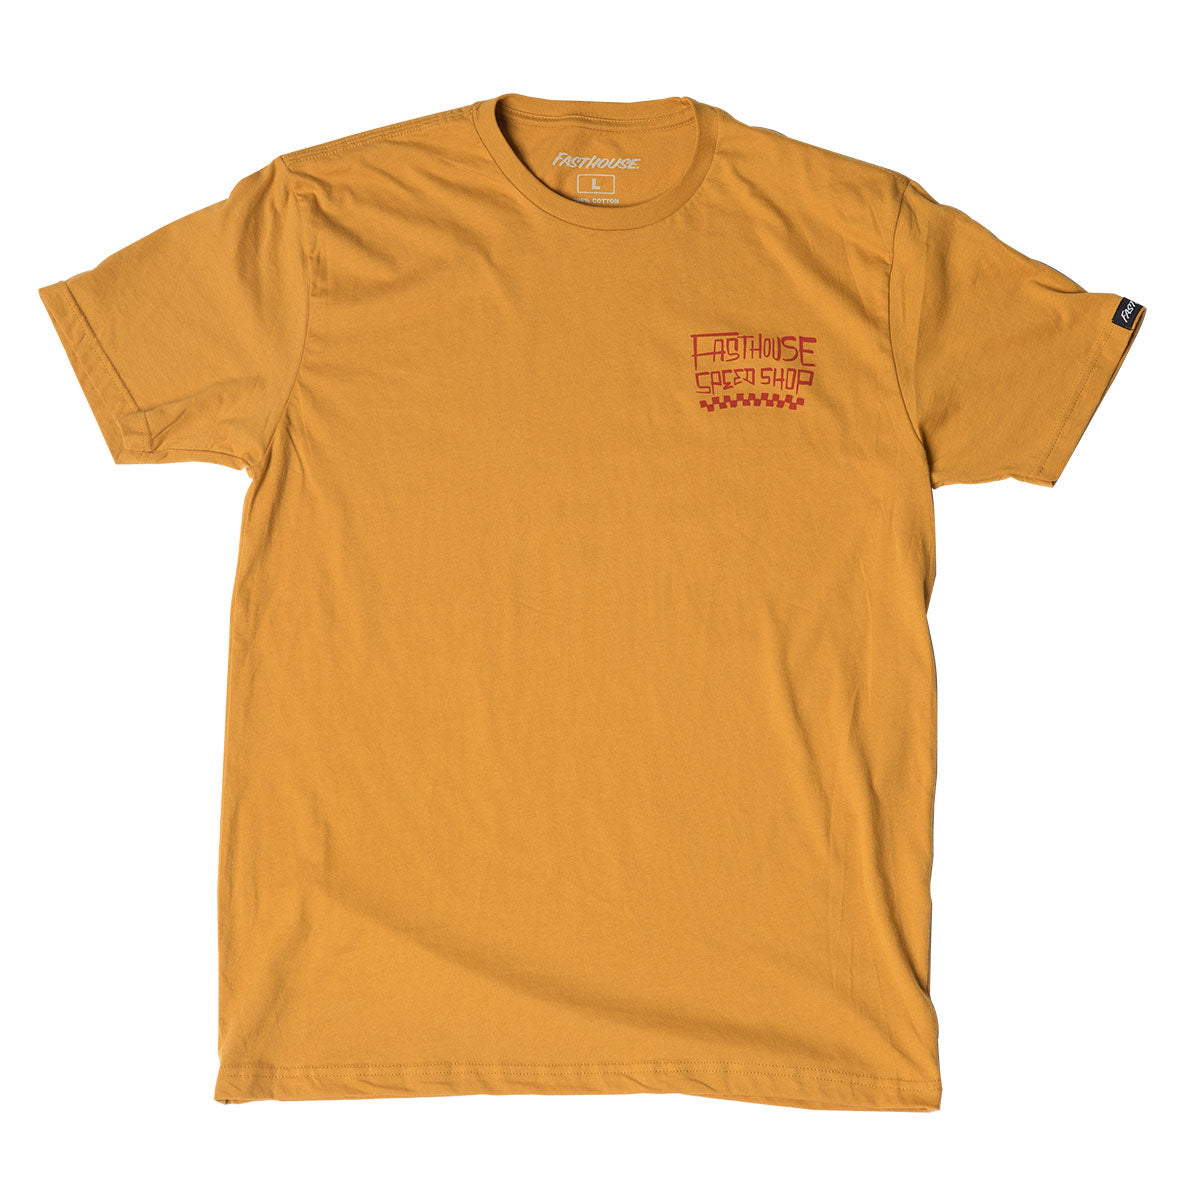 Midway Tee - Vintage Gold